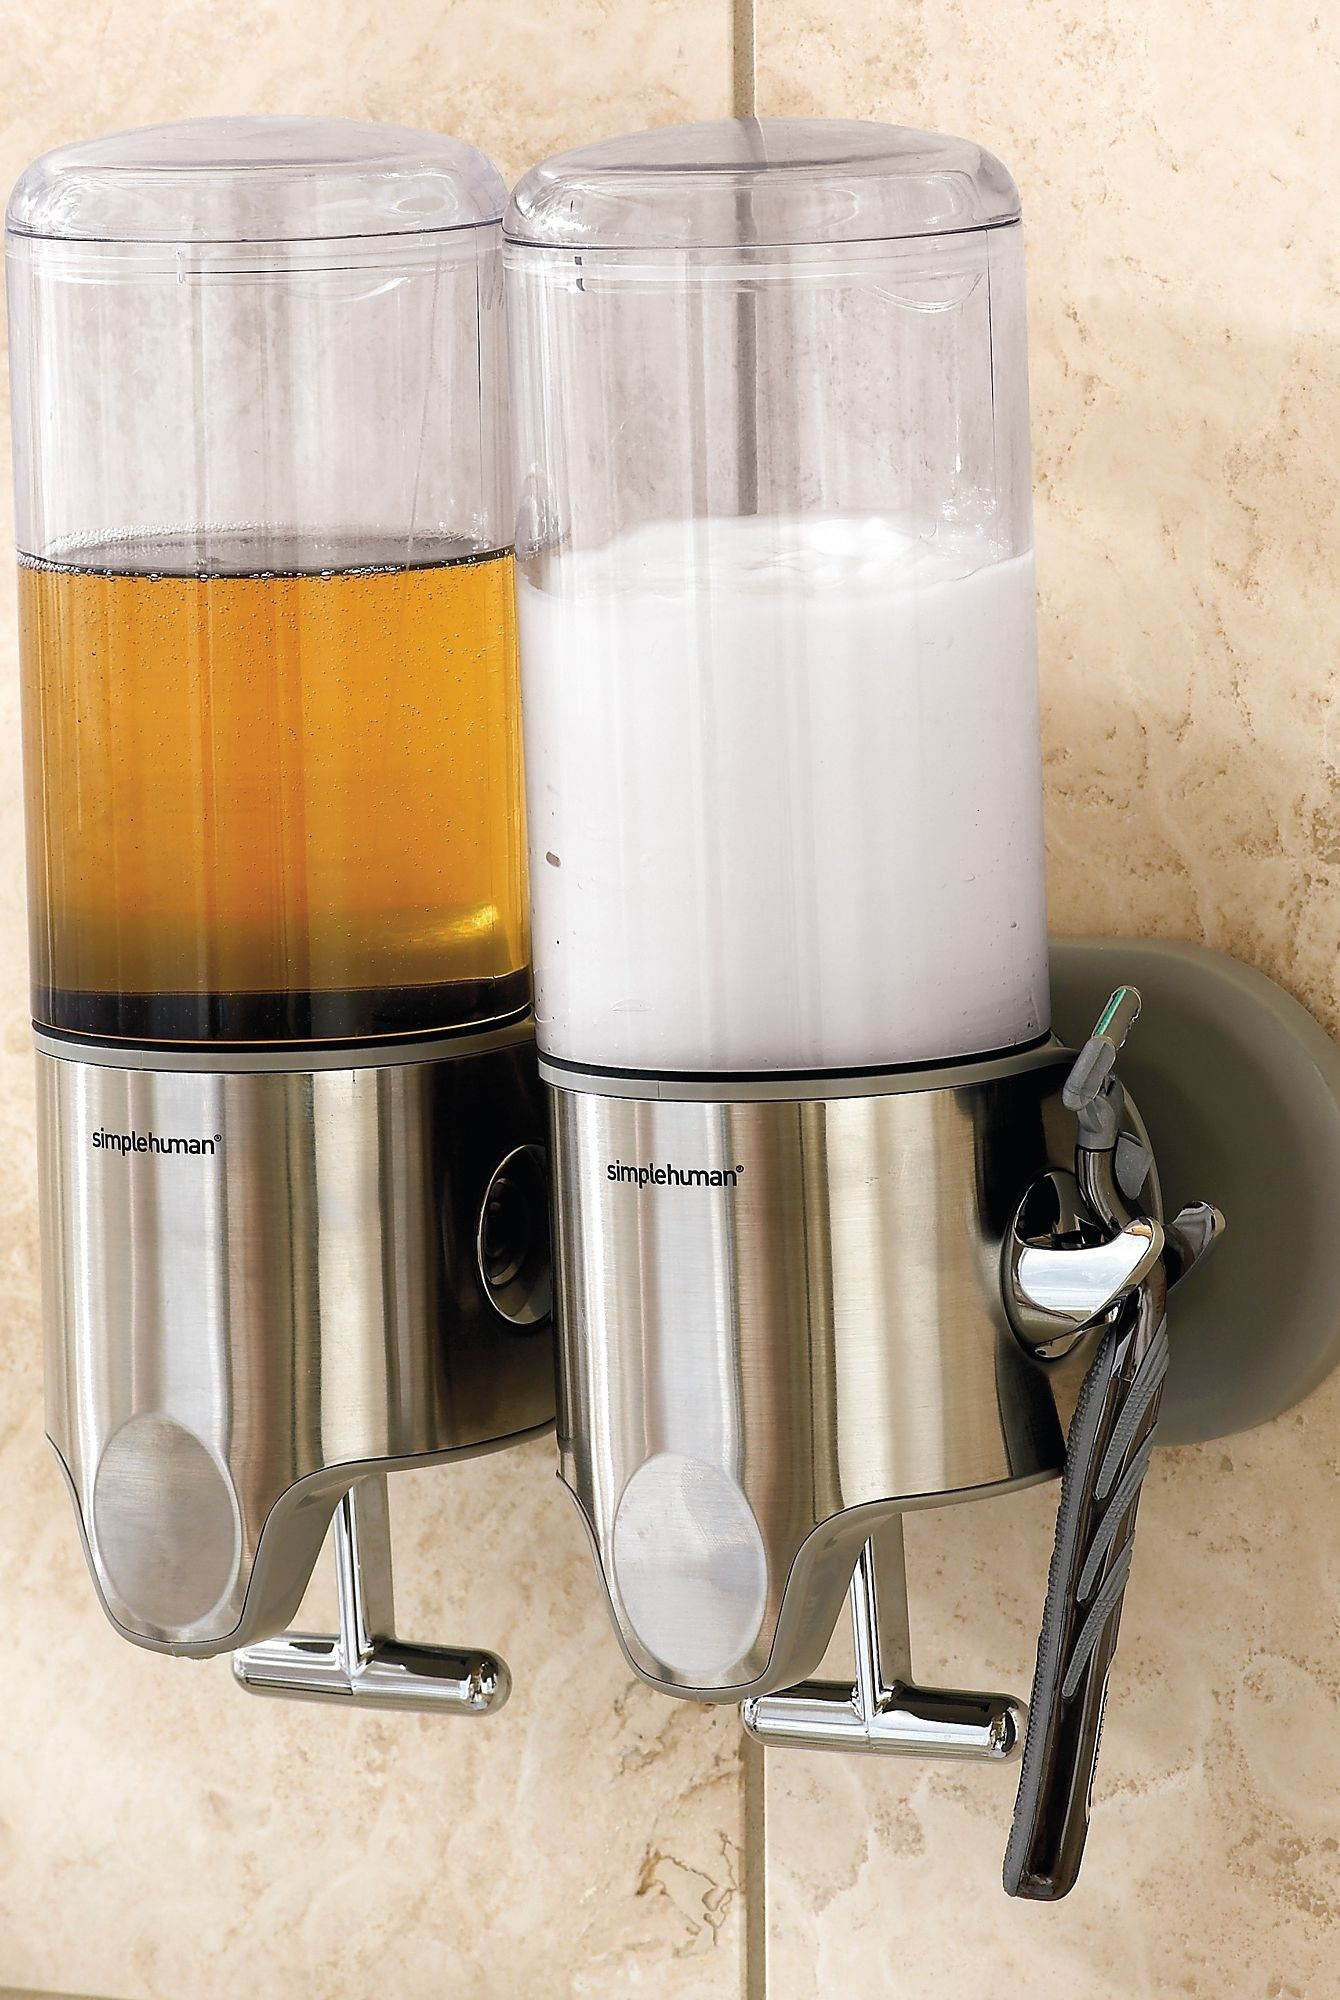 At The Push Of A Lever Our Simplehuman Shower Dispenser Dispenses